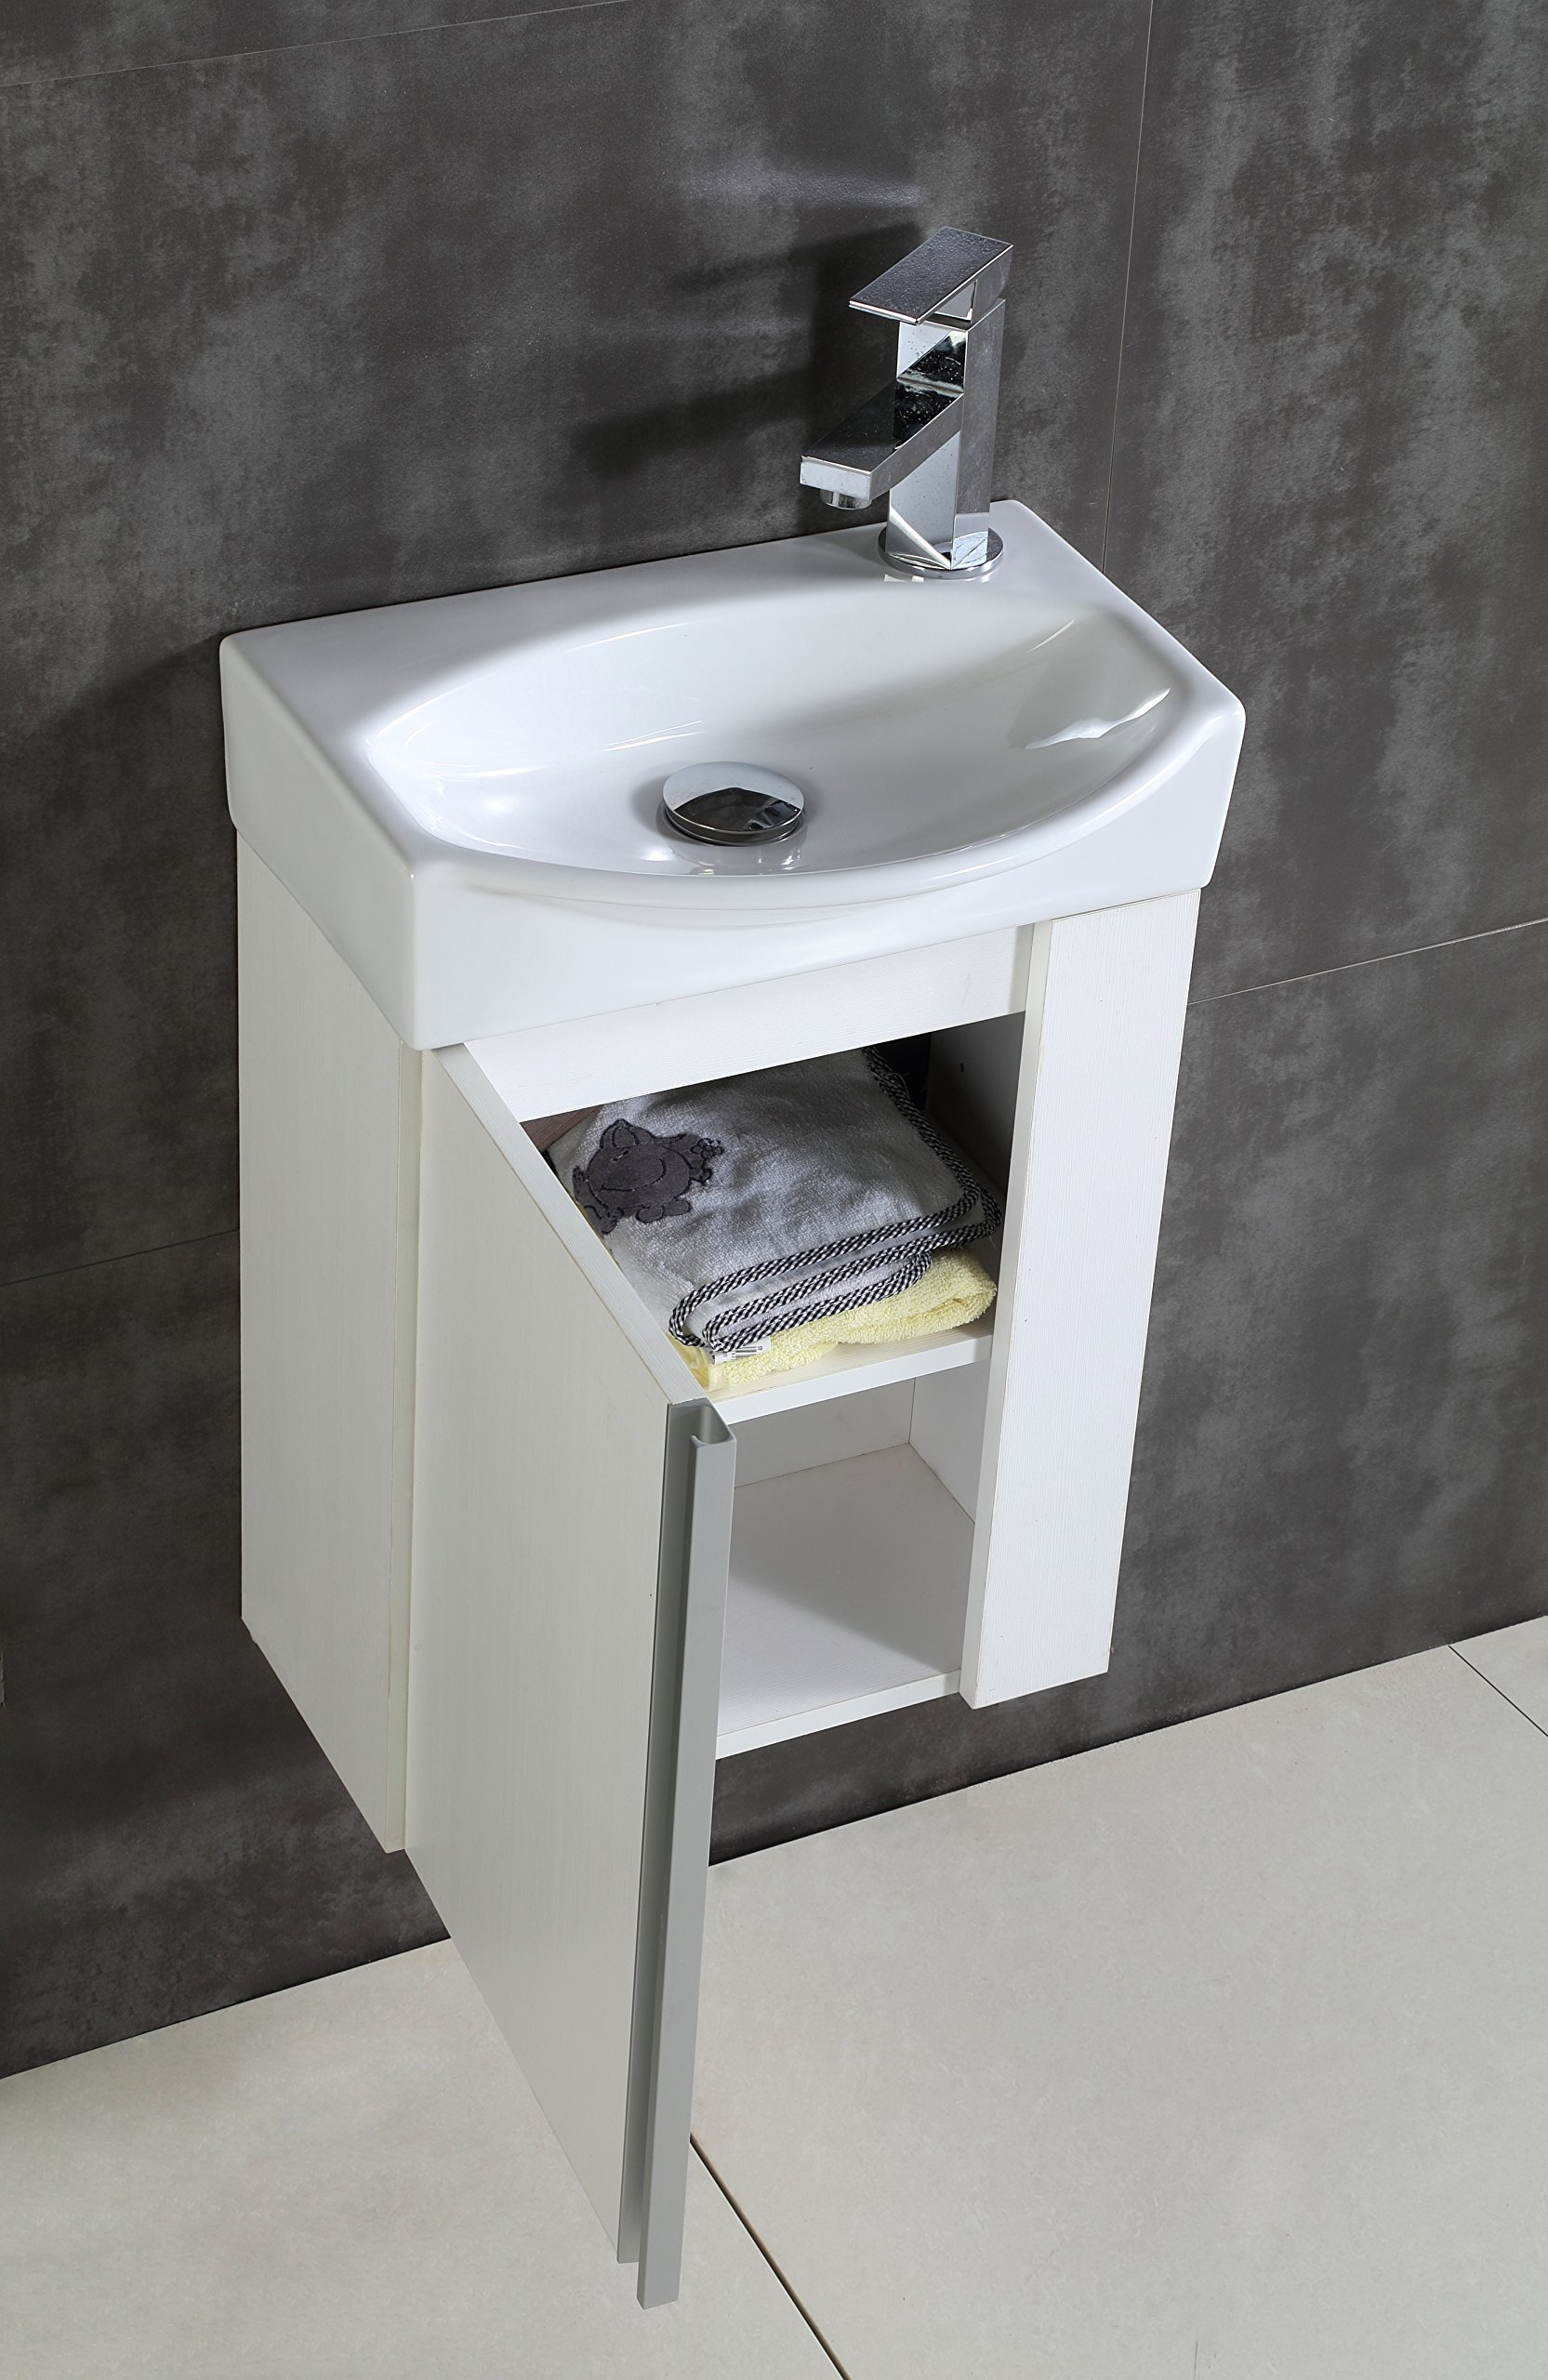 Fine Fixtures Compacto Small Bathroom Vanity Set With Sink -Wall-Hung Cabinet- Sink top, And Mirror Included (White) - COMPACTO VANITY is designed to fit in smaller size bathroom, has enough place to storage your oil and powders, -2 shelves and a single door included- !! Choose one of our 3 beautiful colors BLACK WALNUT, WHITE, GRAY TAUPE. Dimensions of Cabinet with sink top on it- 16 3/8 W x 8 5/8 D x 22 3/4 H. Wall mountable bathroom vanity cabinet, Vitreous China sink and mirror included. (Medicine cabinet Not included). - bathroom-vanities, bathroom-fixtures-hardware, bathroom - 91r%2BgHah5wL -